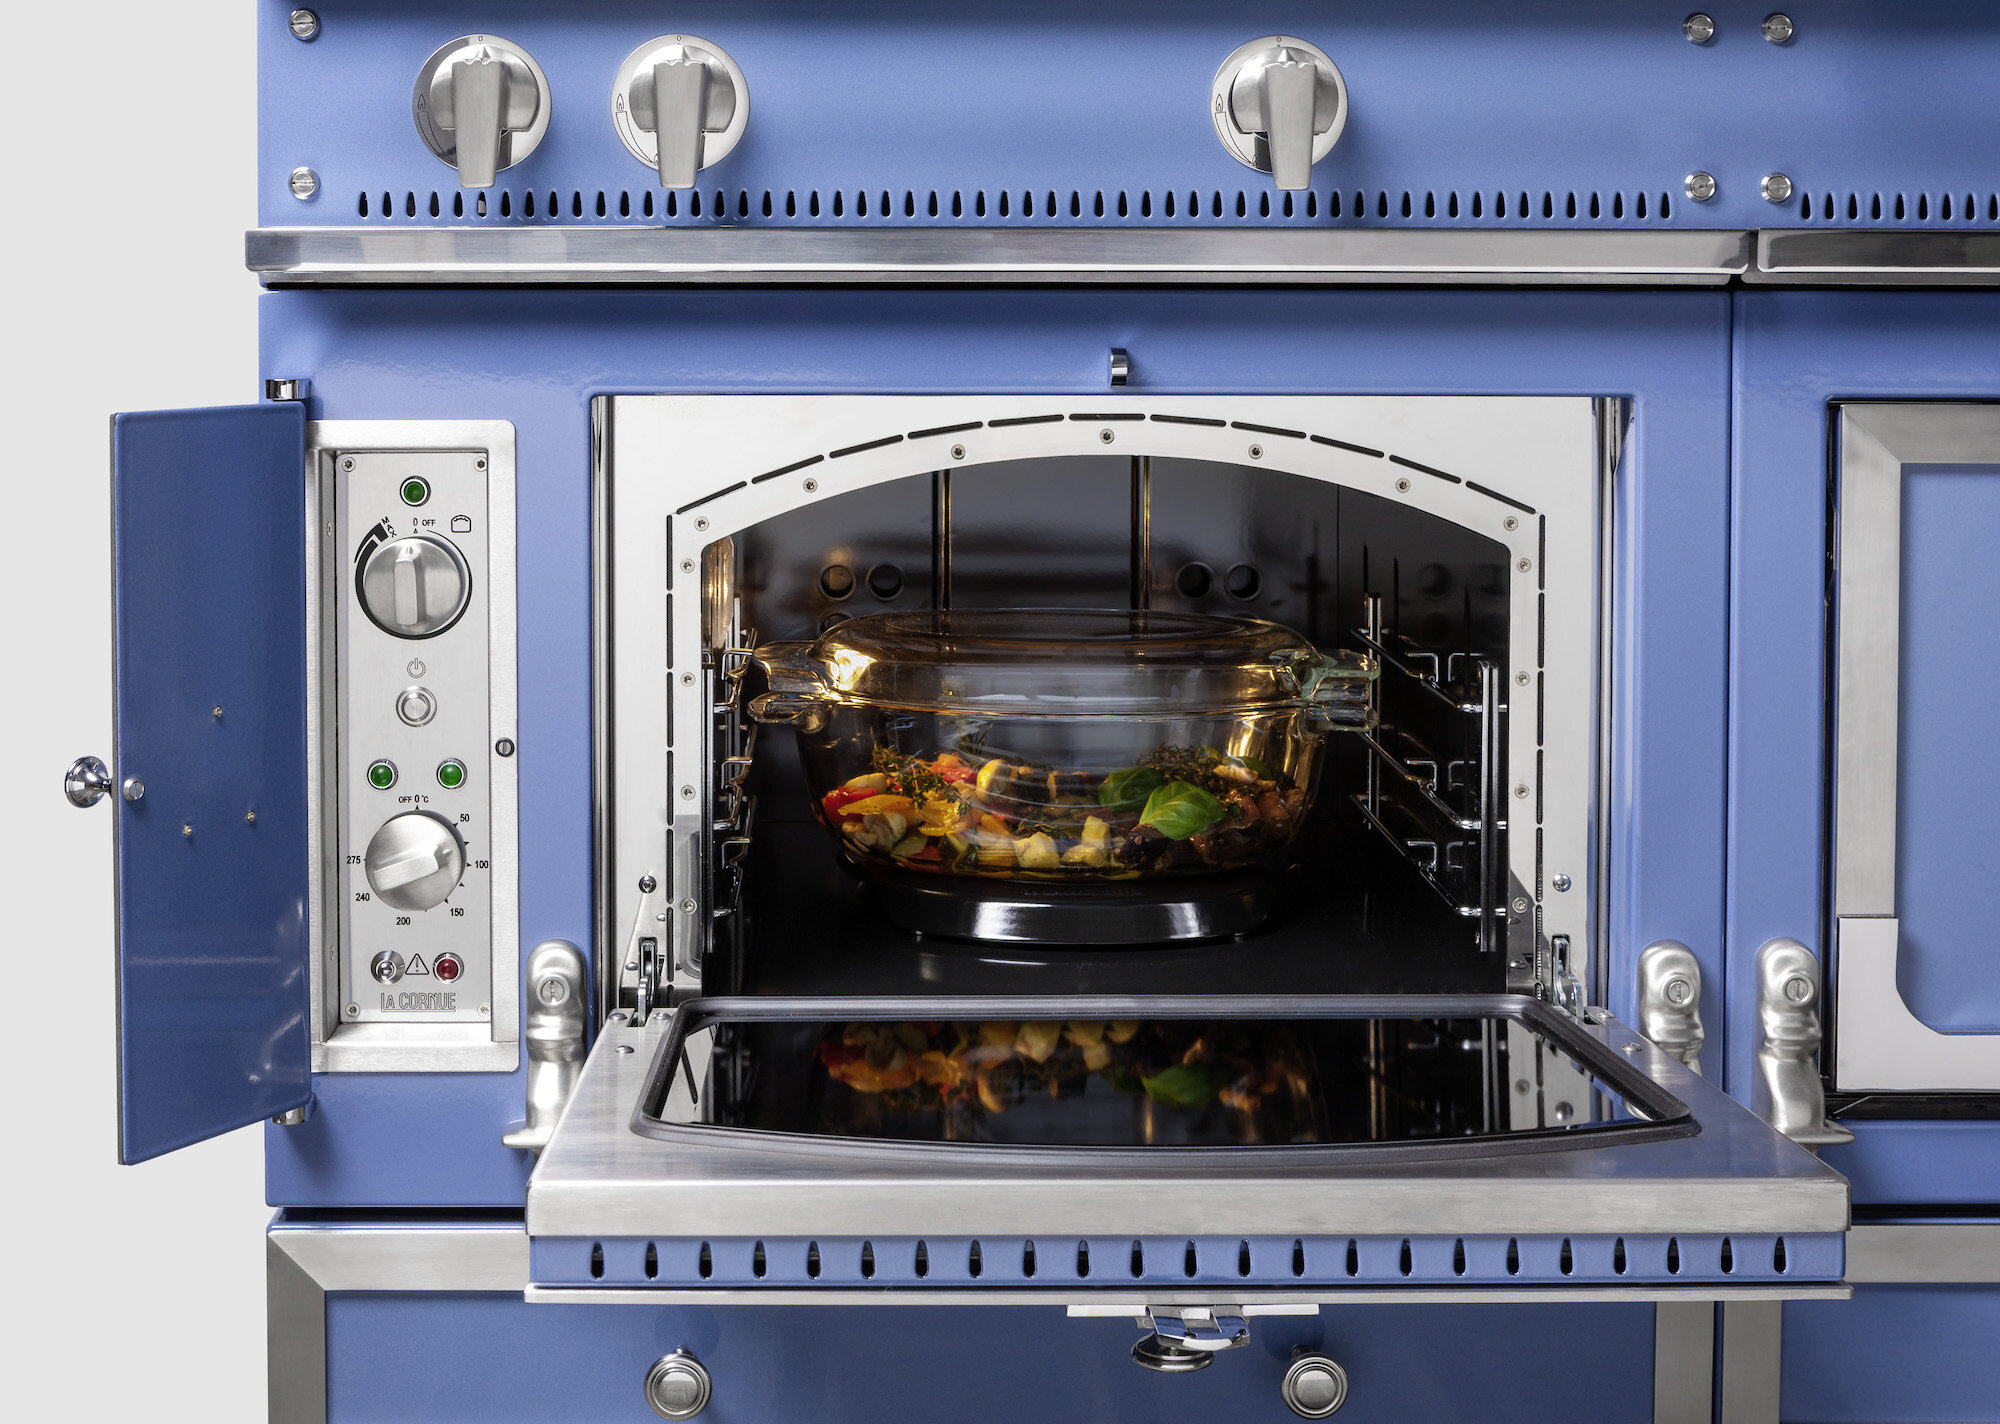 Latest G4 Chateau with vaulted oven design